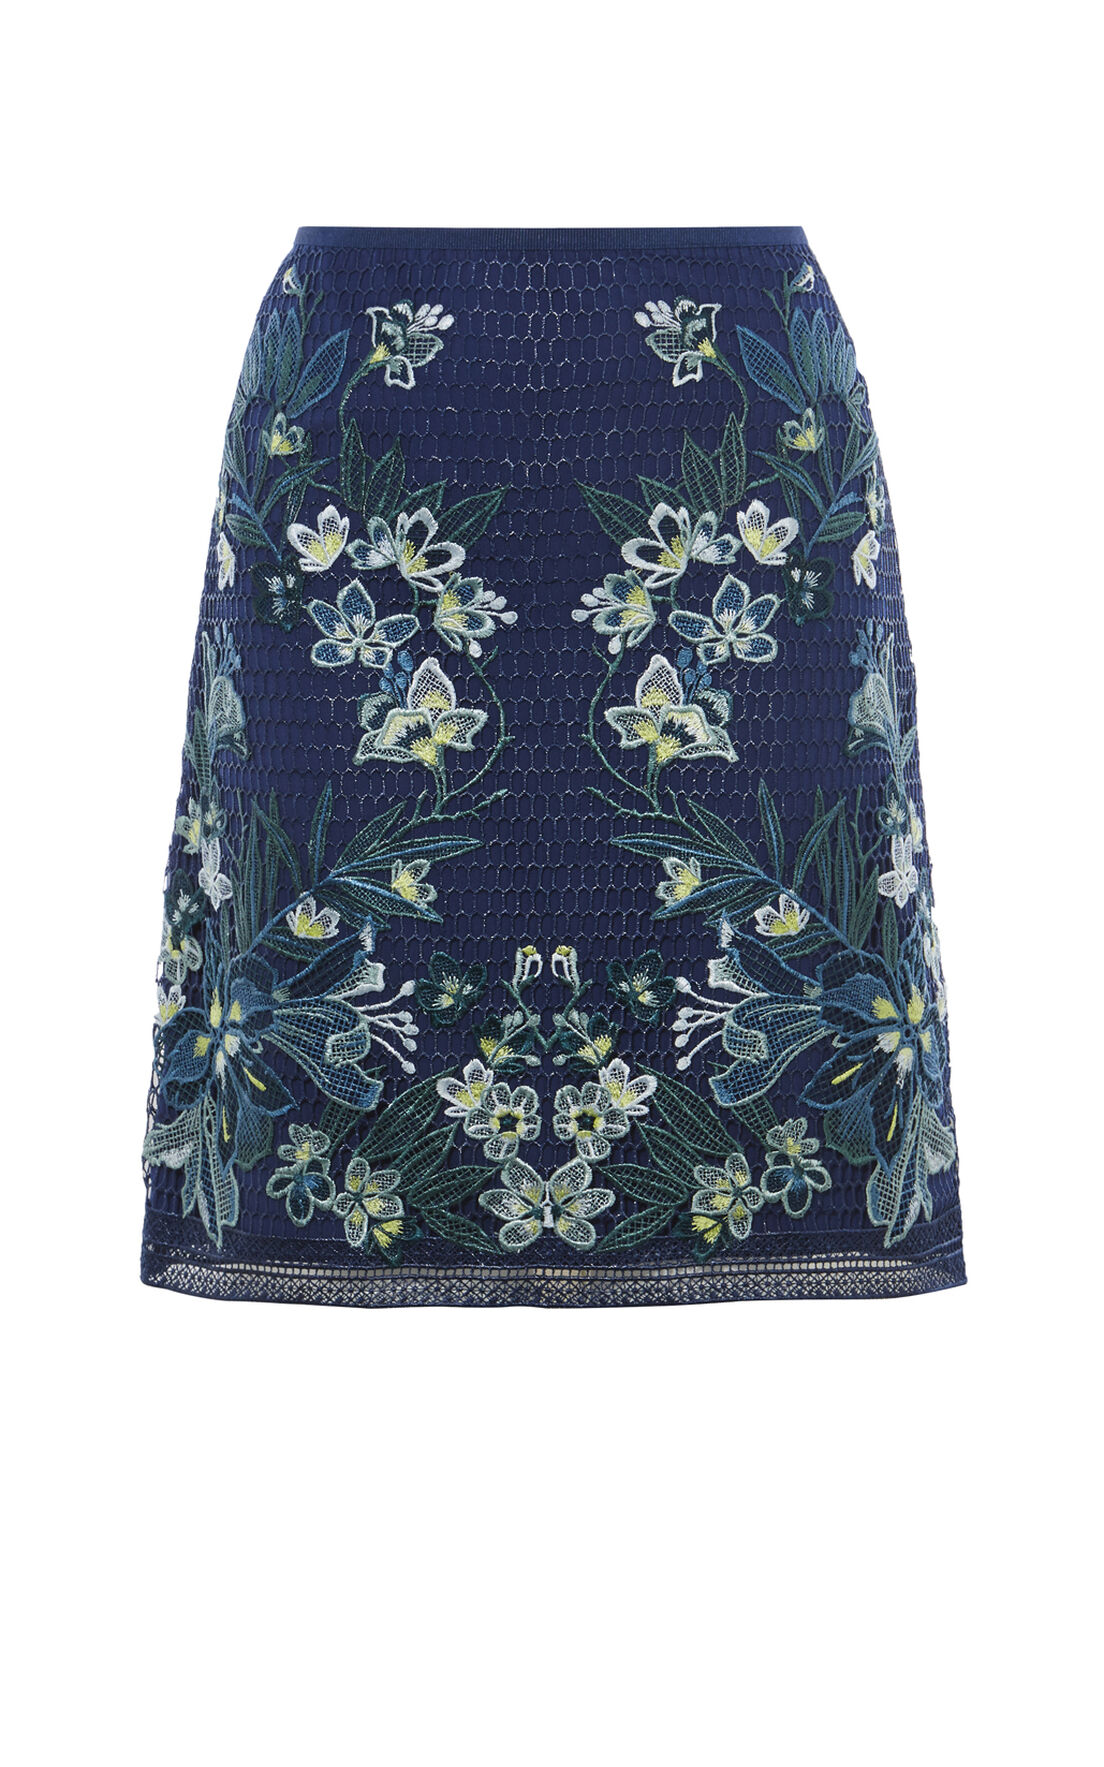 Karen Millen, TROPICAL-EMBROIDERY LACE SKIRT Blue/Multi 0